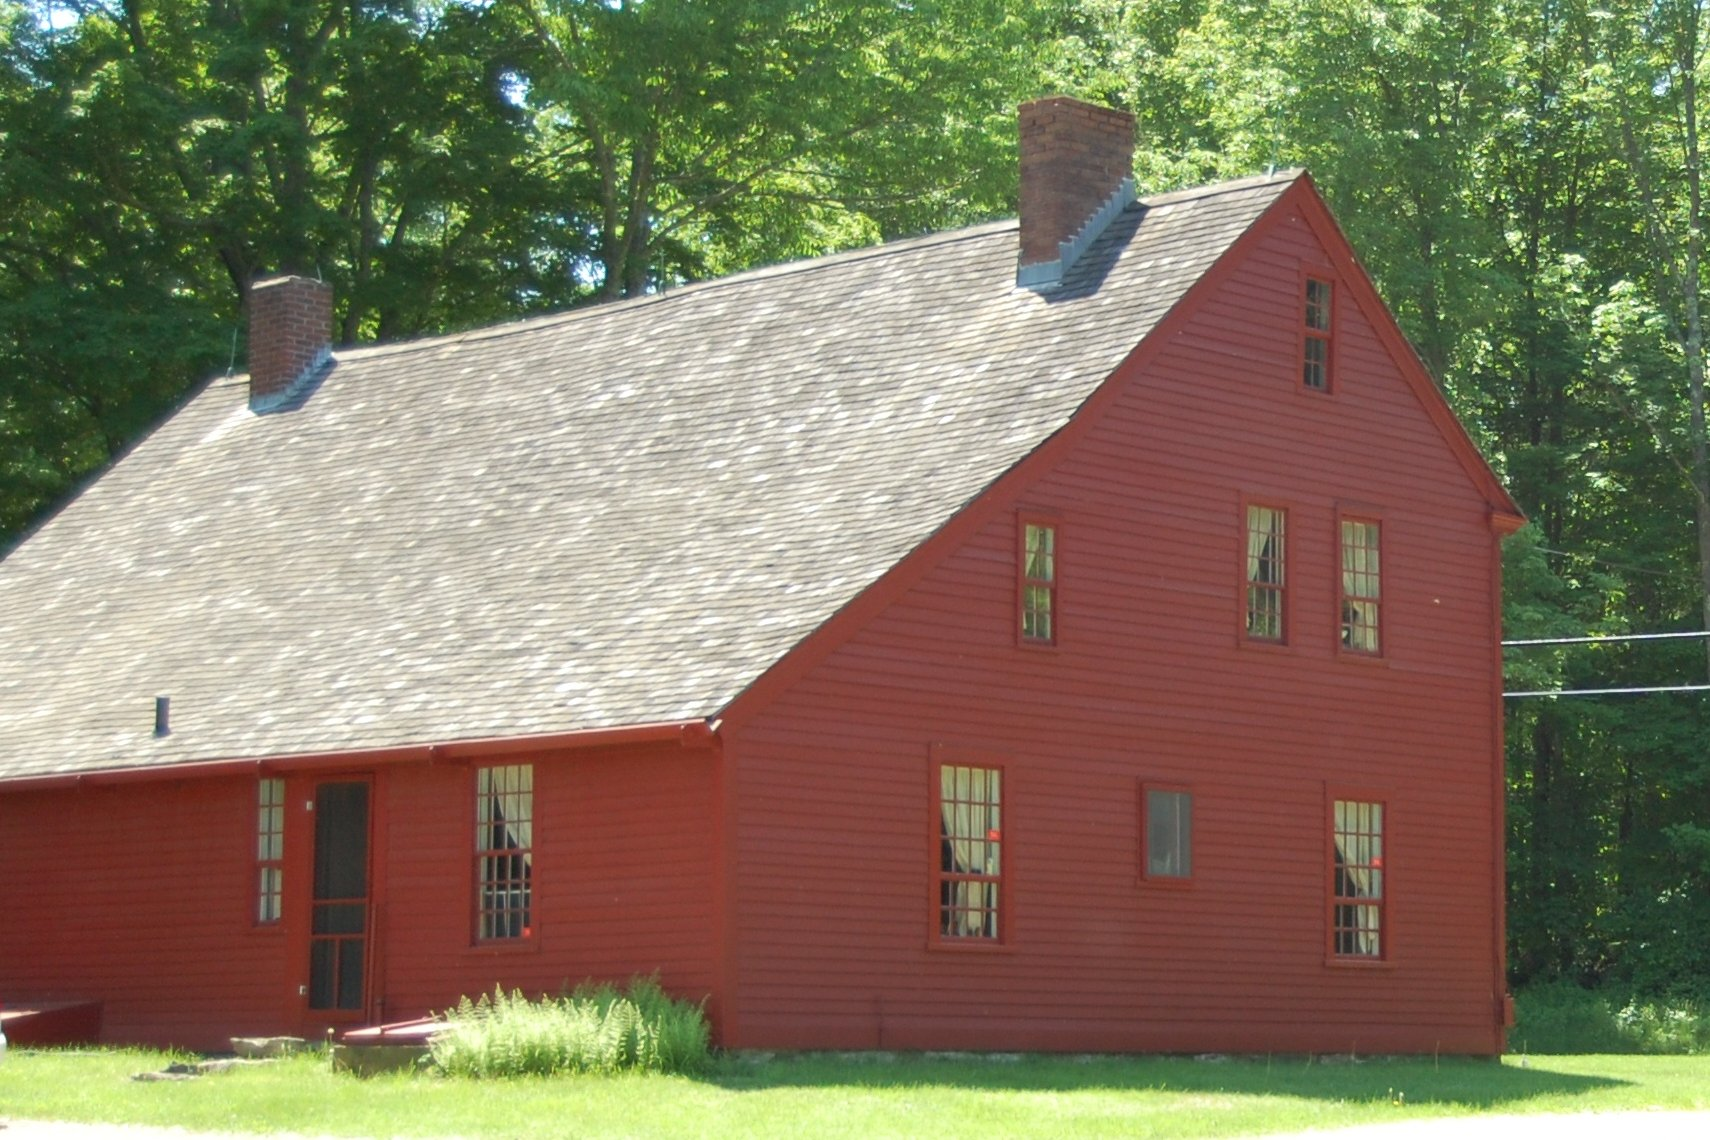 A rear view of the Strong-Porter House, showing the lean-to addition probably provided by the prolific Porters.